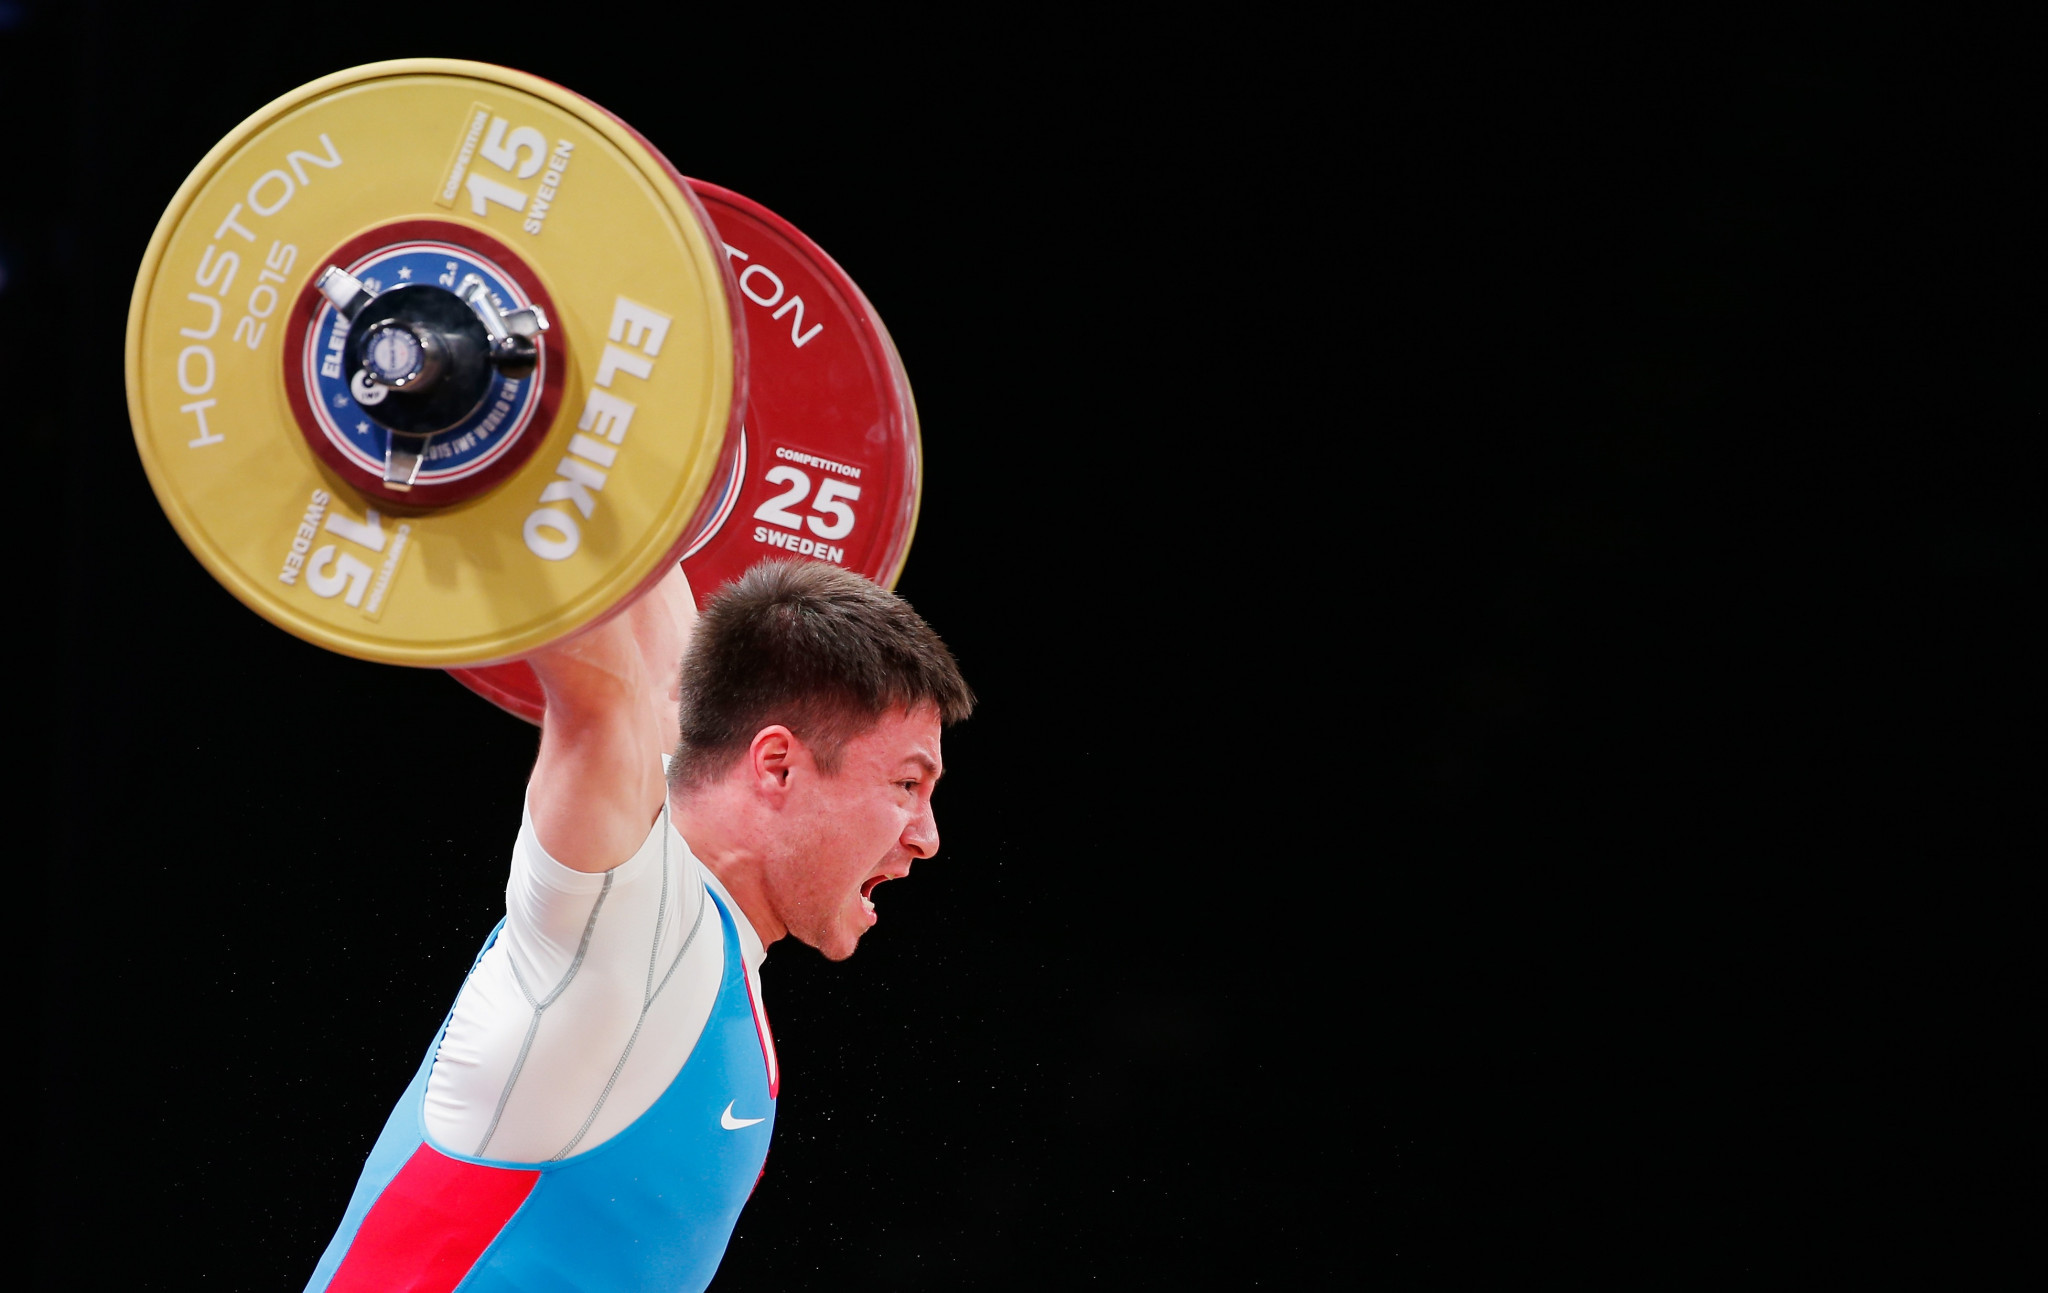 Russian weightlifter suspended over alleged anti-doping rule violation